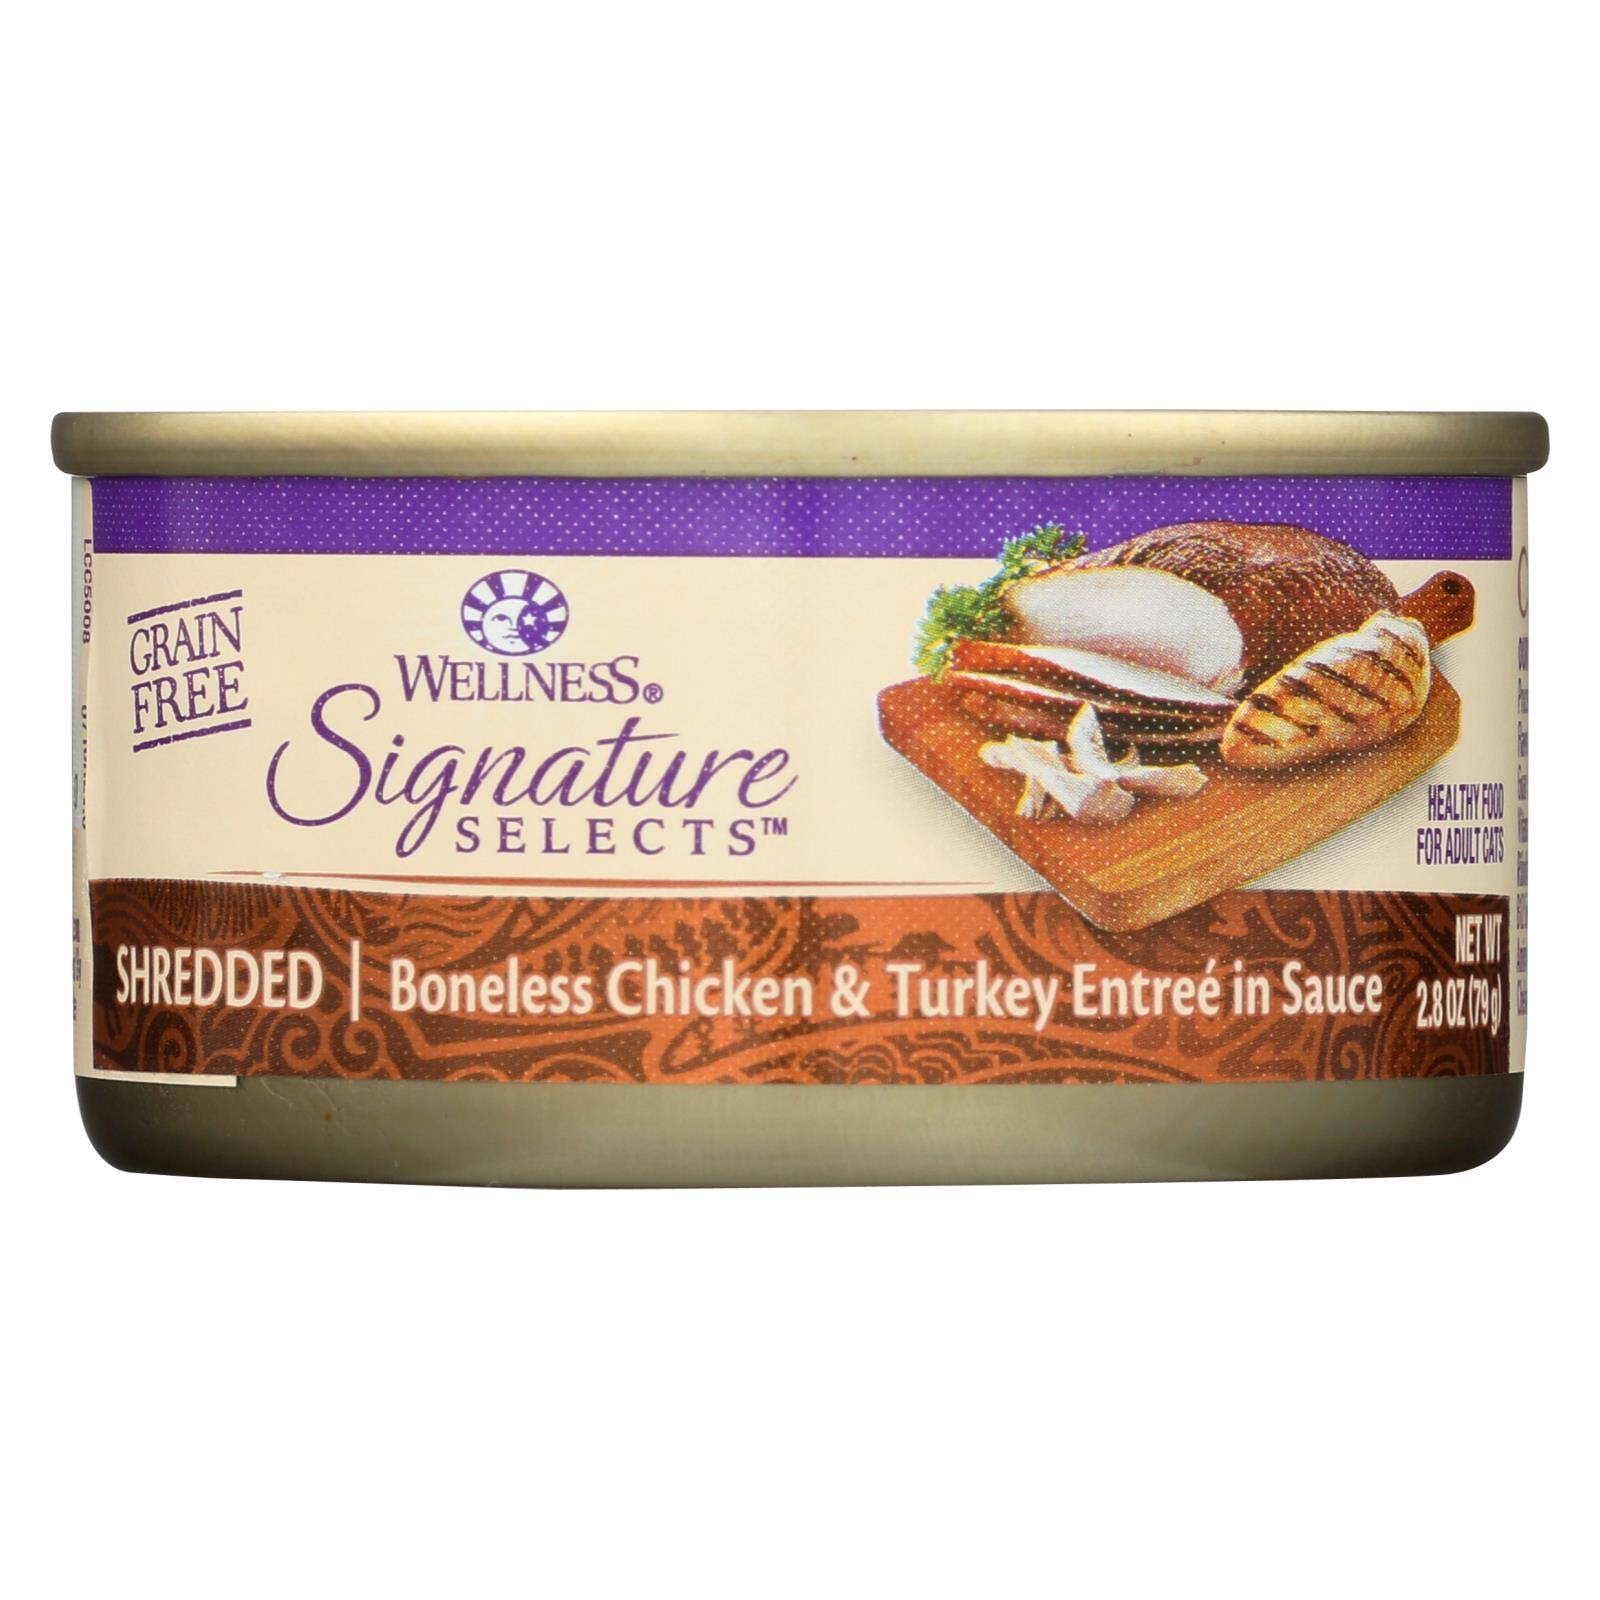 Wellness Signature Selects Grain Free Wet Cat Food - Chicken and Turkey, 2.8oz